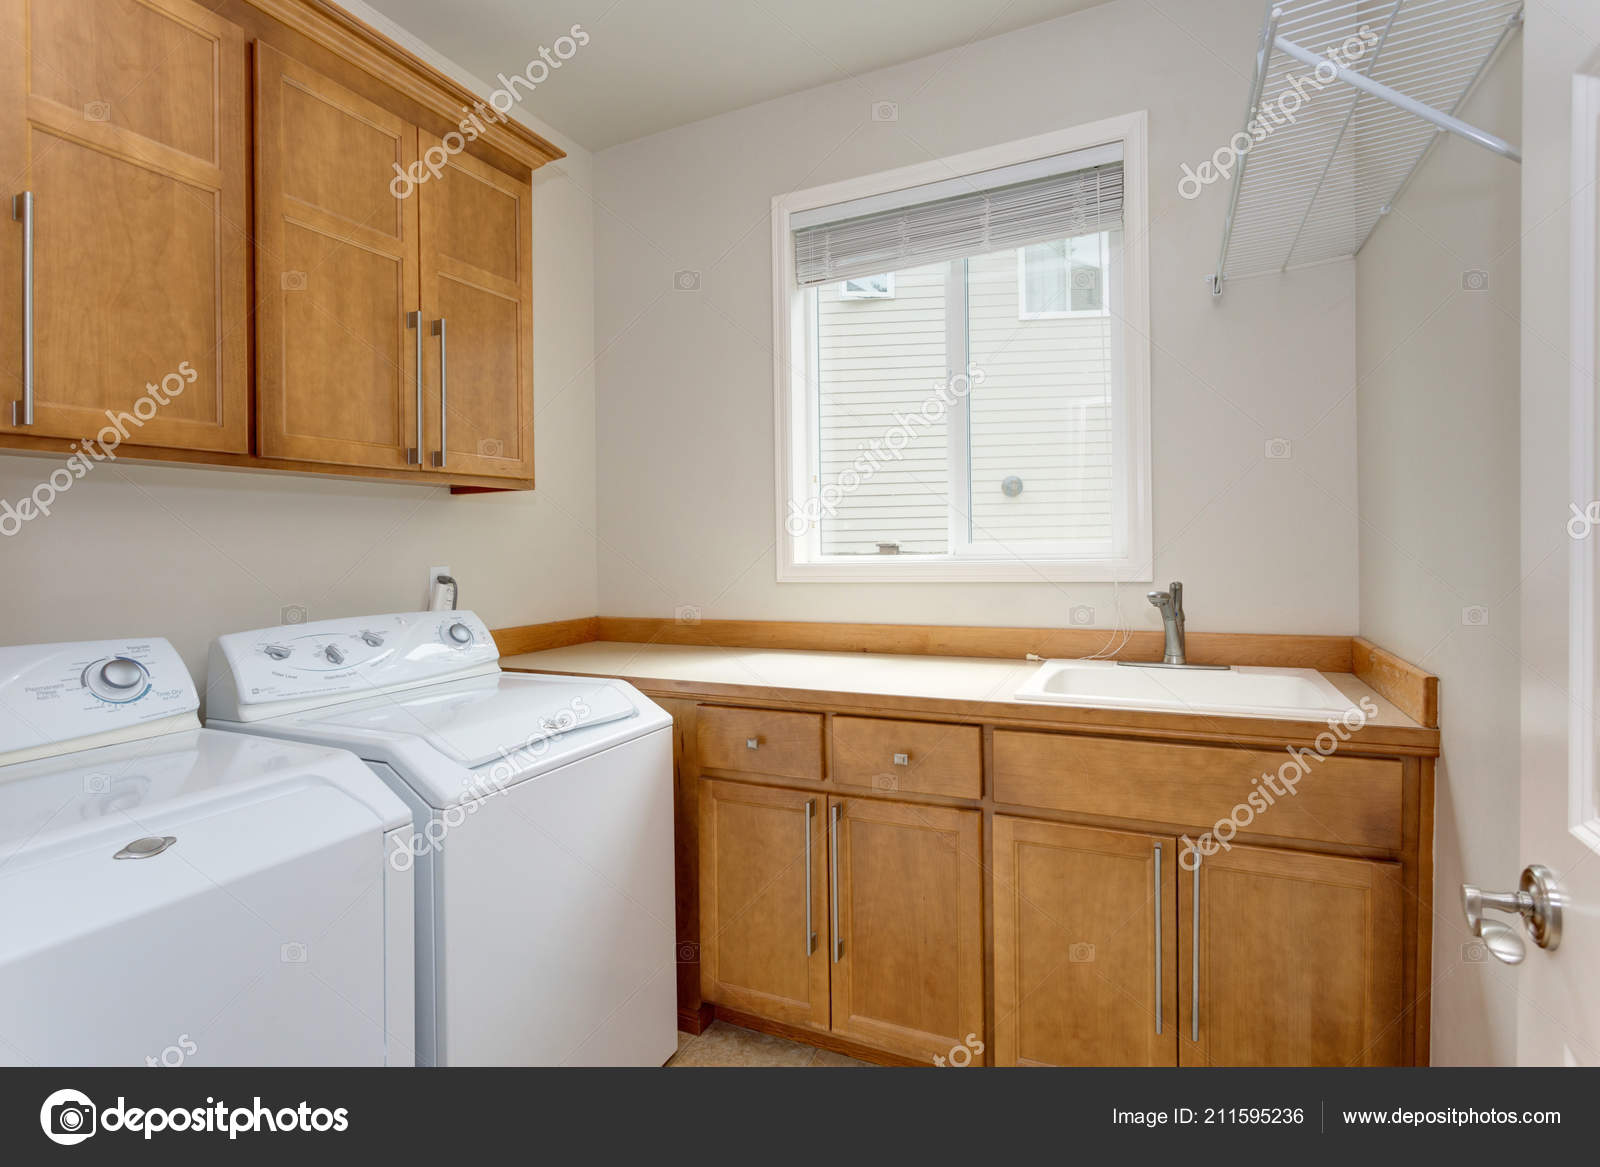 Small Bathroom With Washer And Dryer Ideas Small Laundry Room Light Brown Cabinets White Washer Dryer Stock Photo C Alabn 211595236